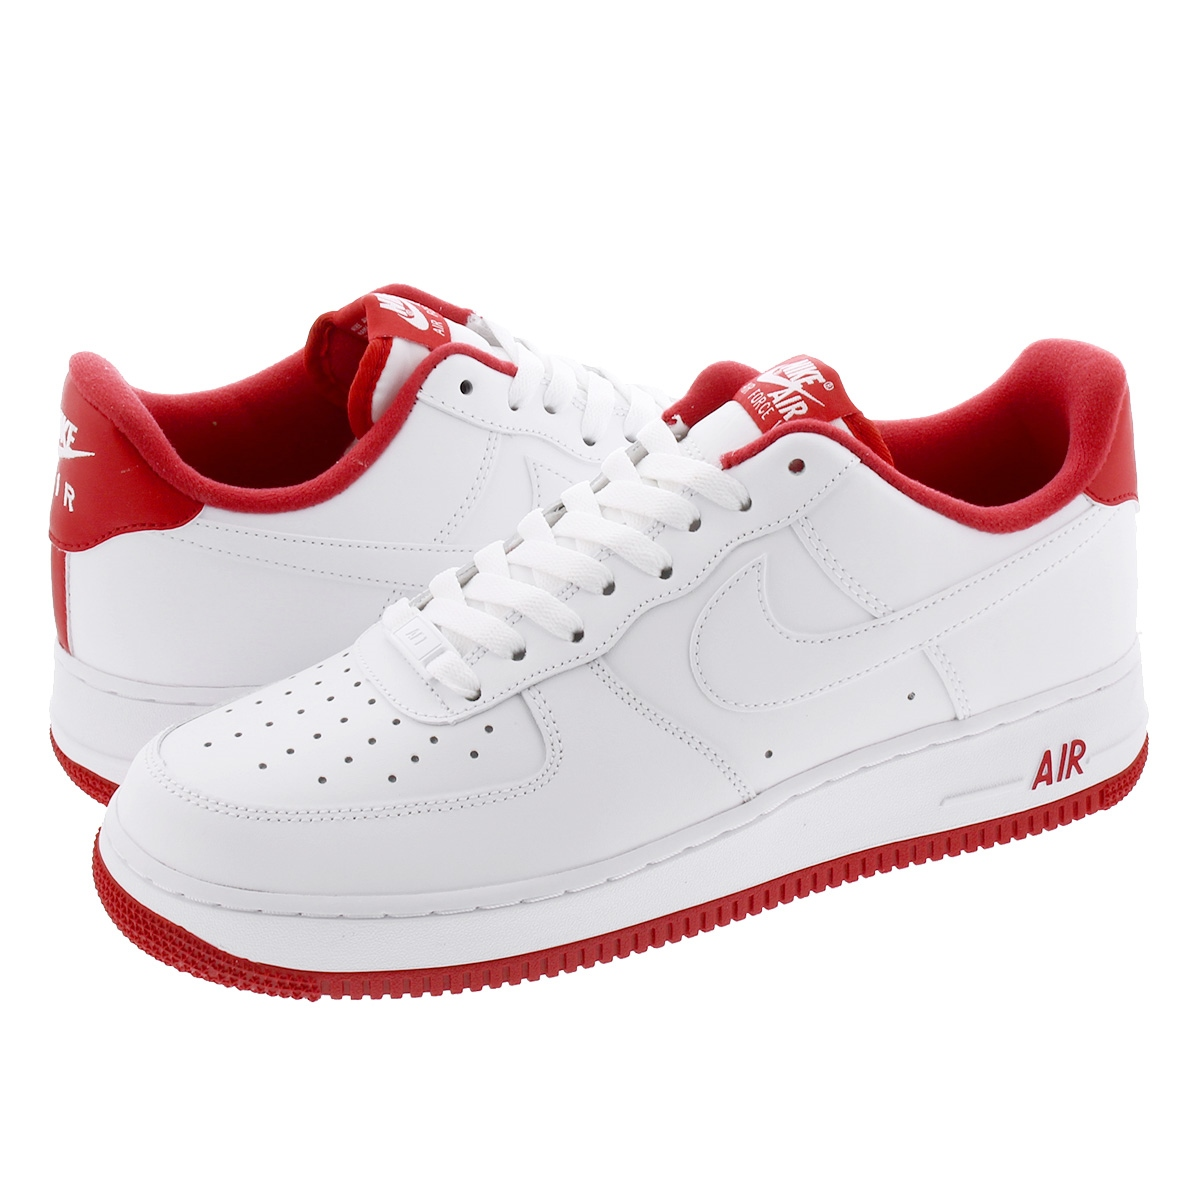 NIKE AIR FORCE 1 '07 1 Nike air force 1 07 1 WHITEUNIVERSITY RED cd0884 101